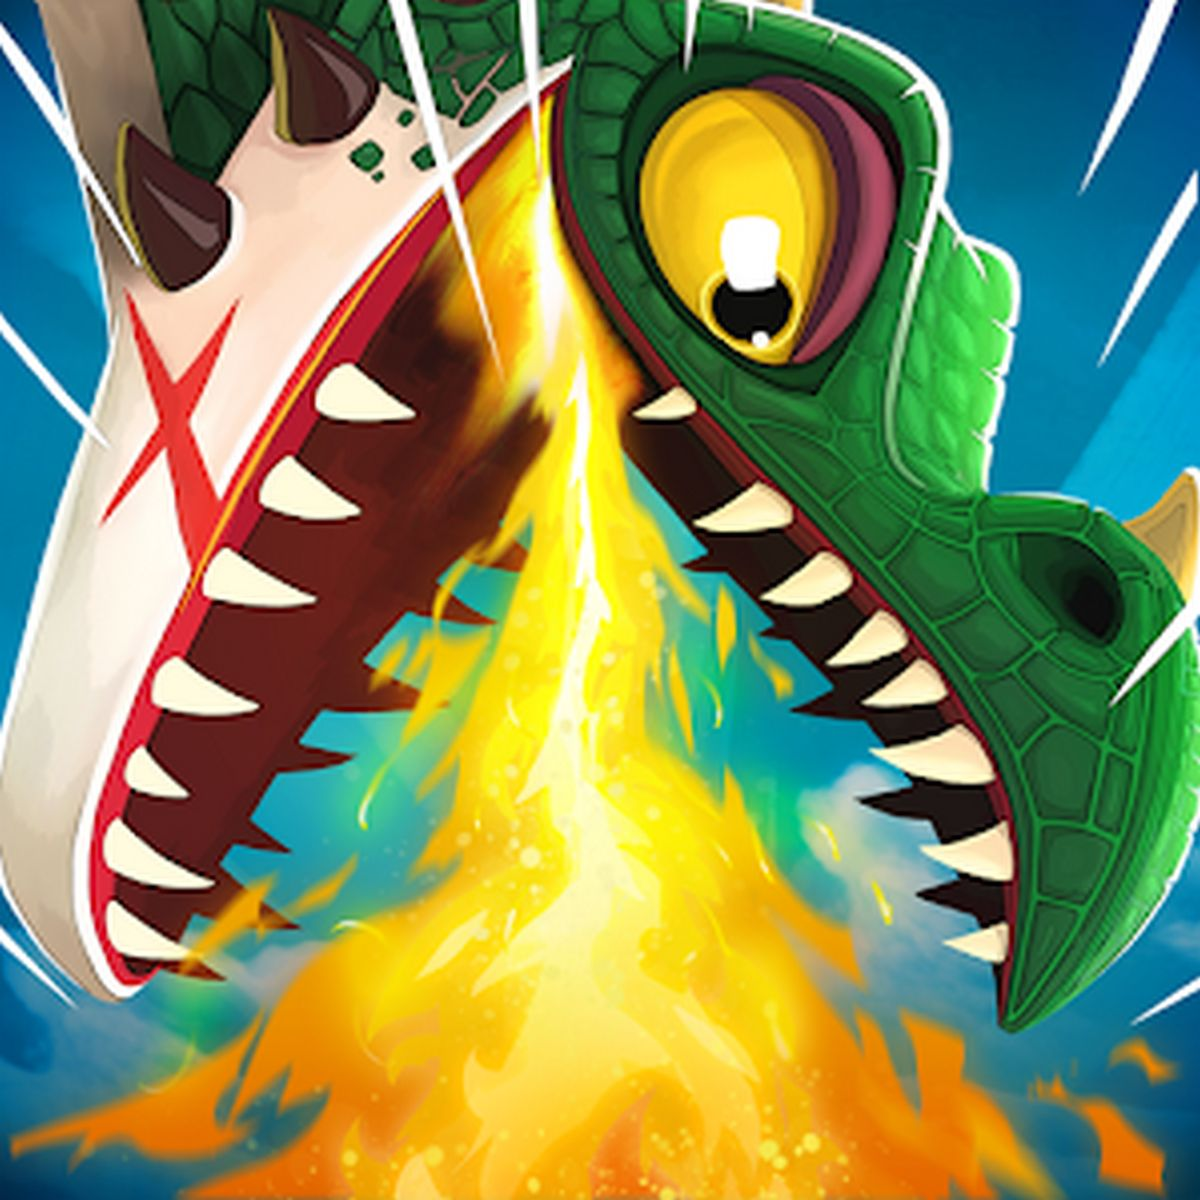 Hungry Dragon APK MOD v3.6 (Diamantes/Dinero infinito), Cloud Pocket 365